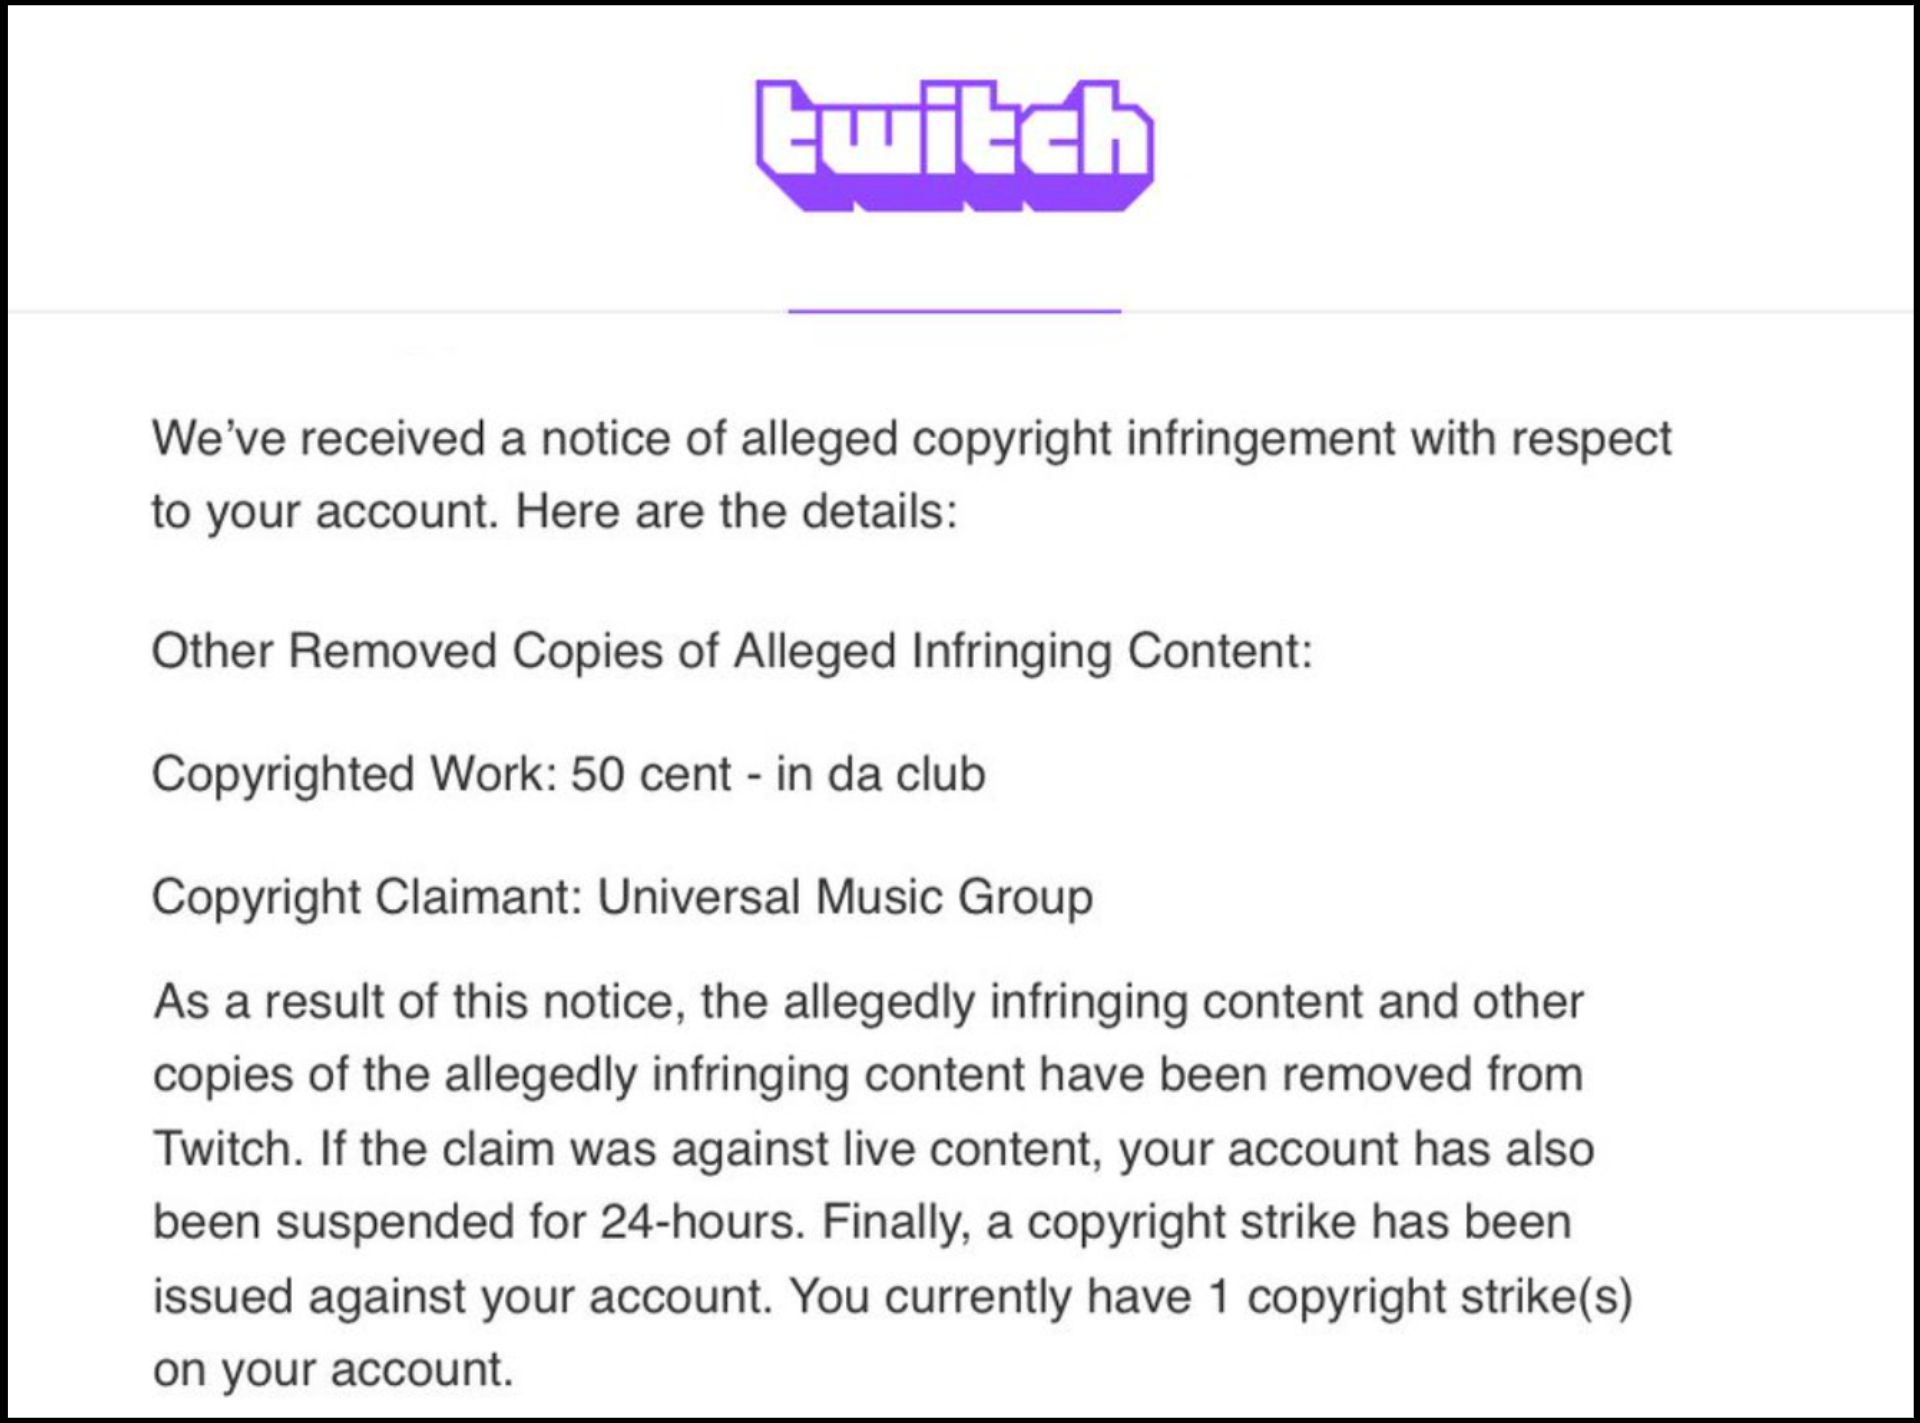 A screenshot of a DMCA violation message from Twitch.